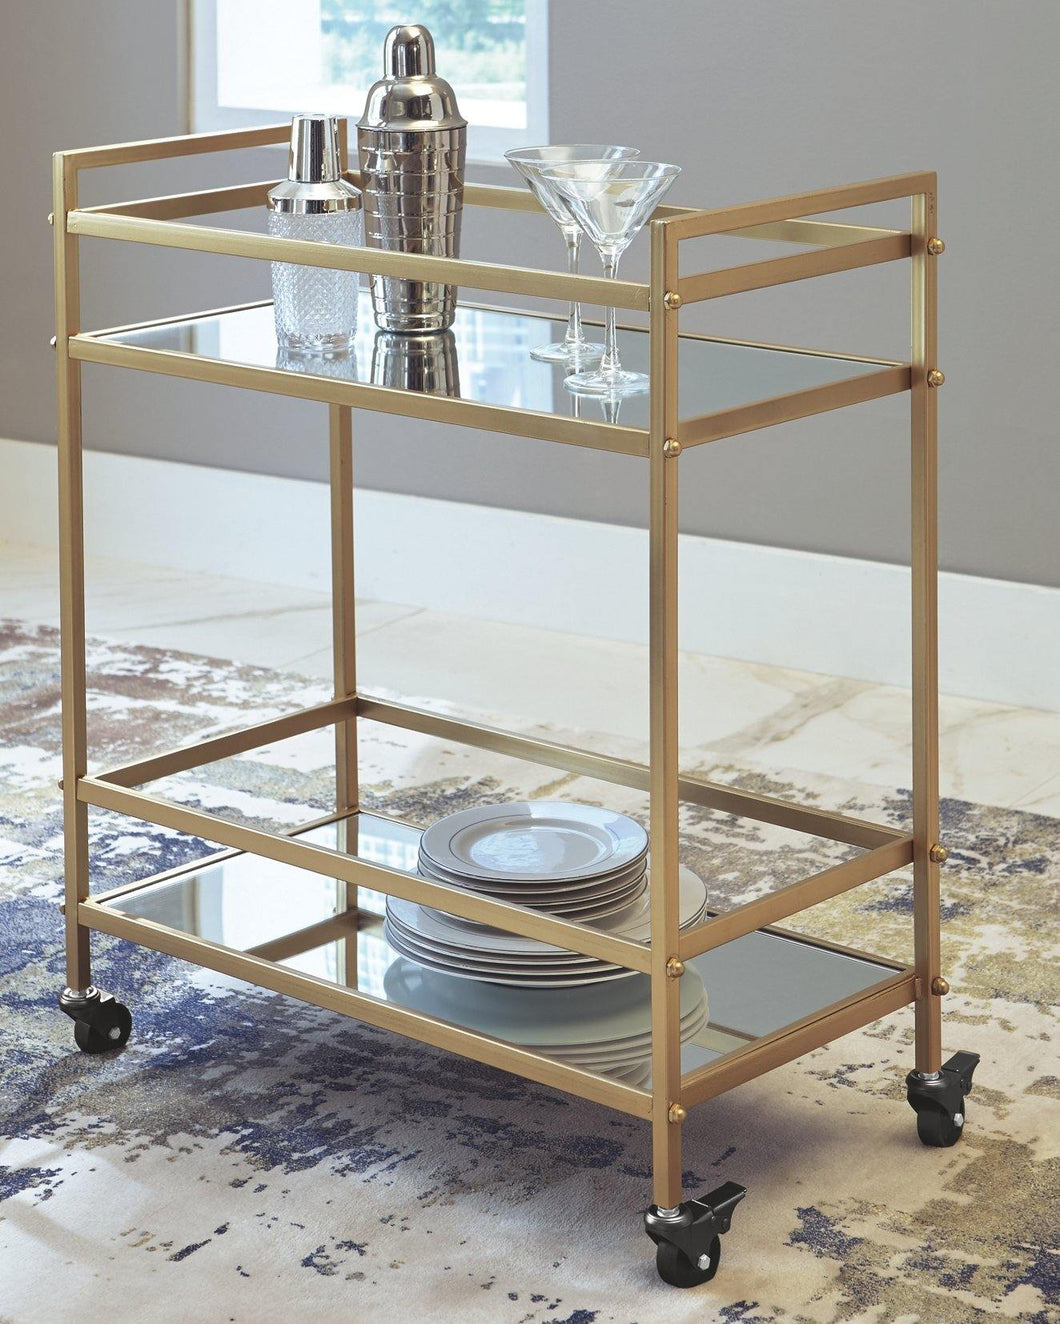 Kailman Bar Cart A4000095 By Ashley Furniture from sofafair